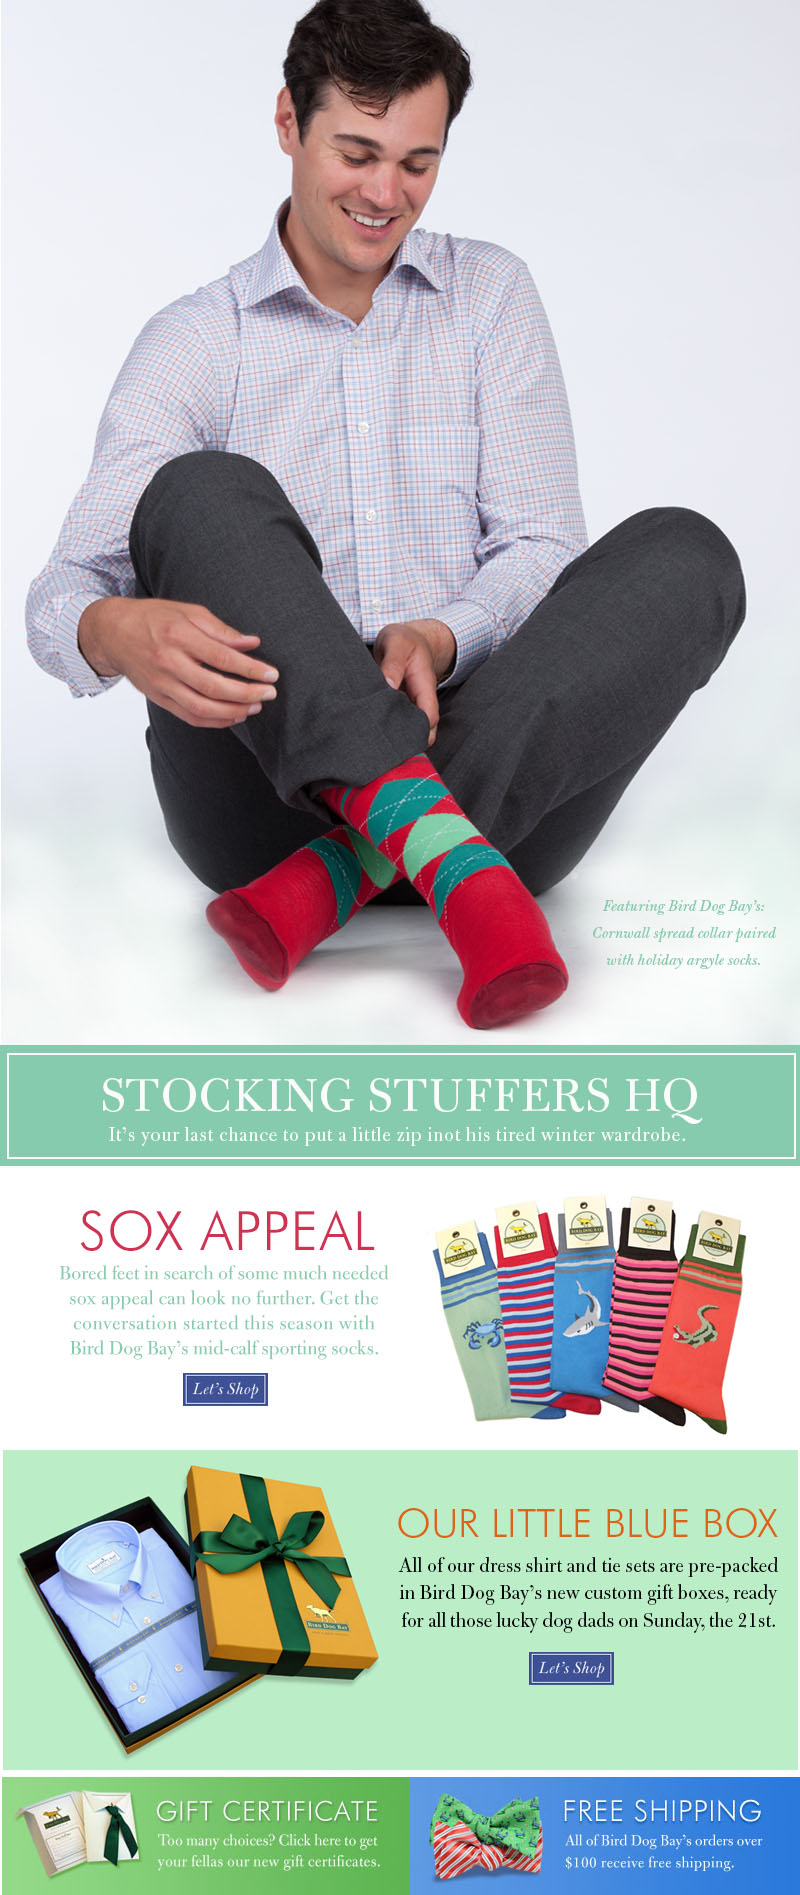 stockingstuffer2015